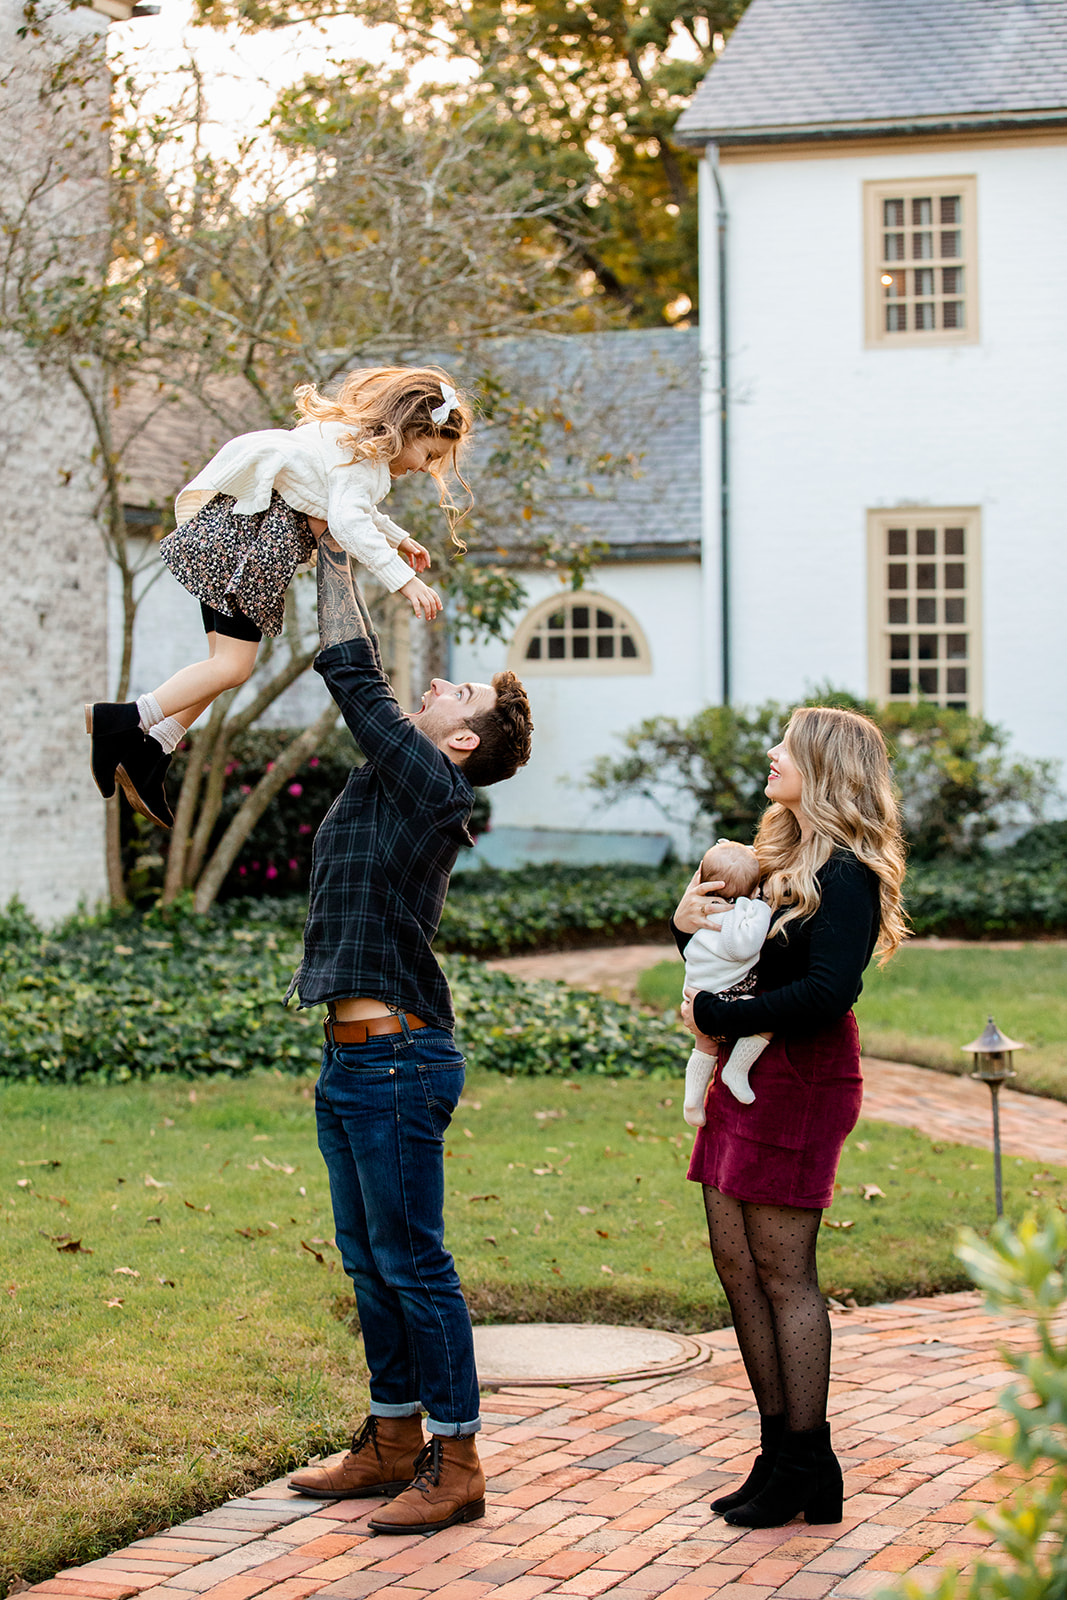 The Bogue Family Photos at The Williamsburg Inn - Image Property of www.j-dphoto.com